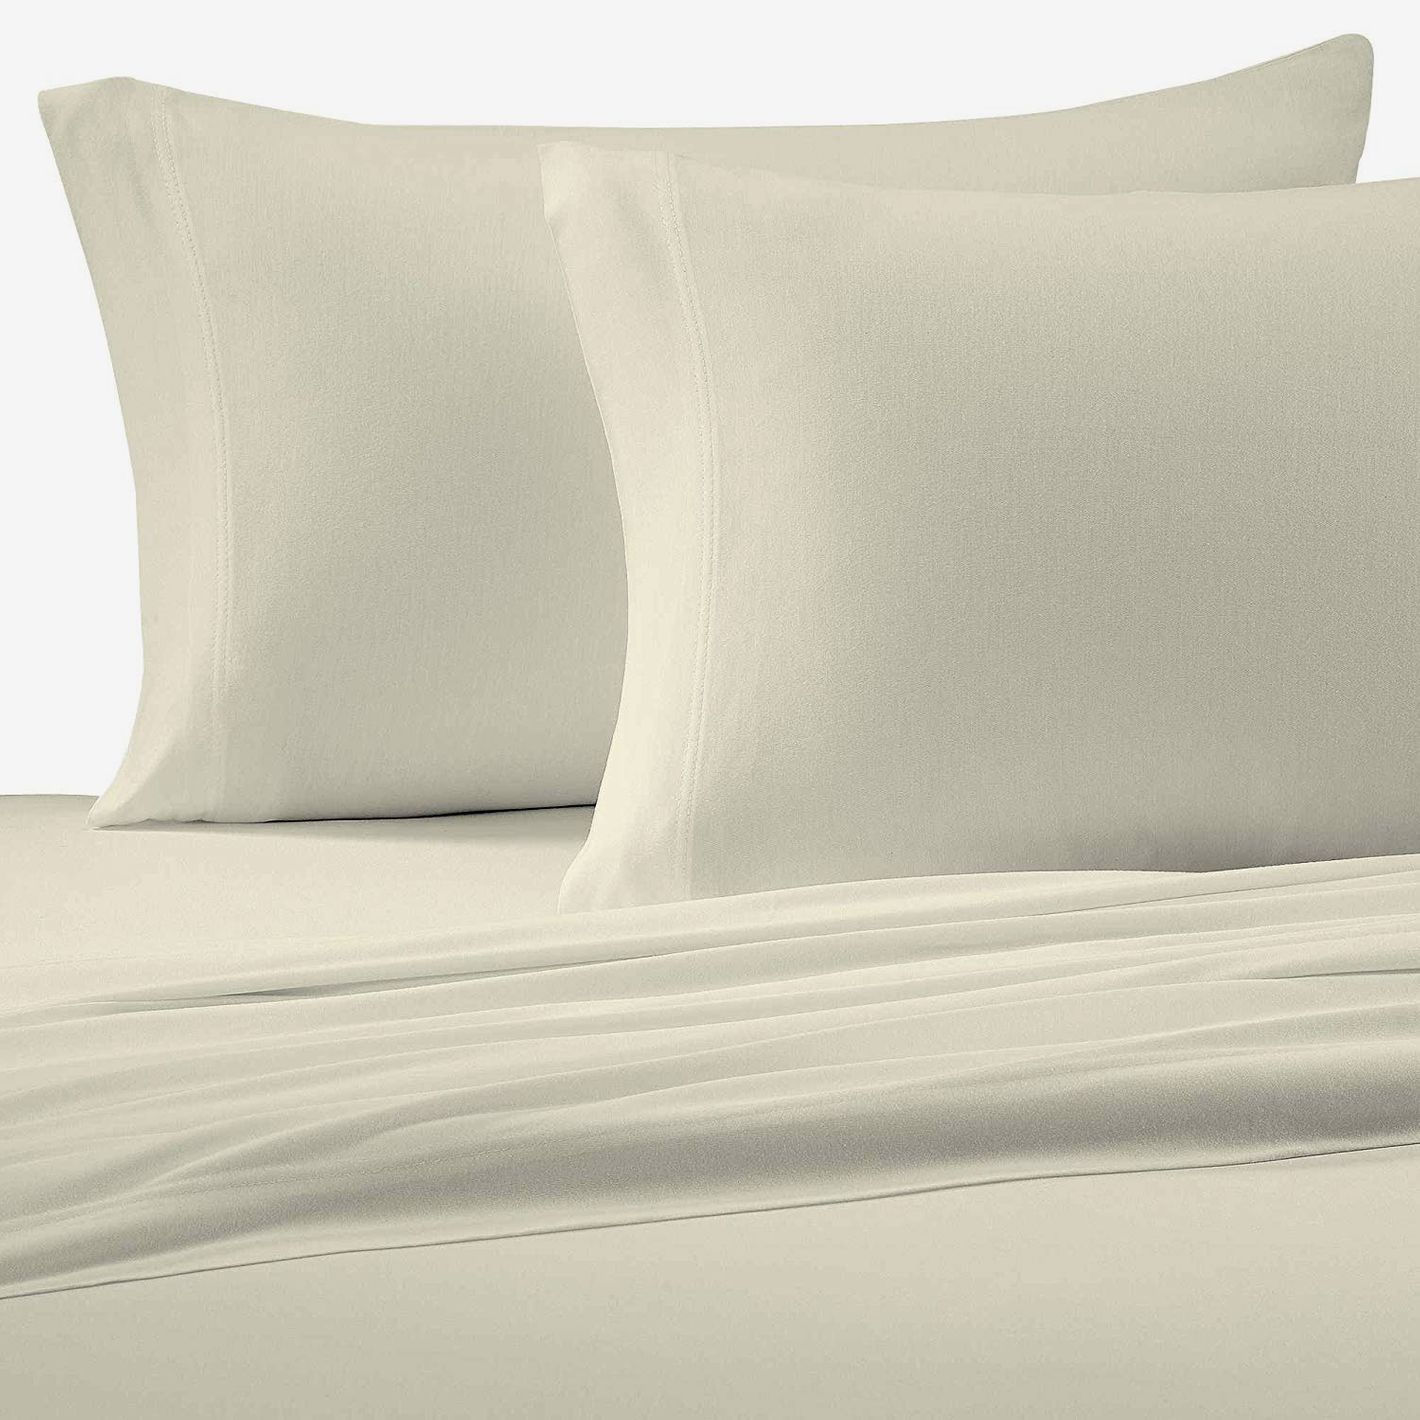 Brielle Cotton Jersey Knit Sheet Set